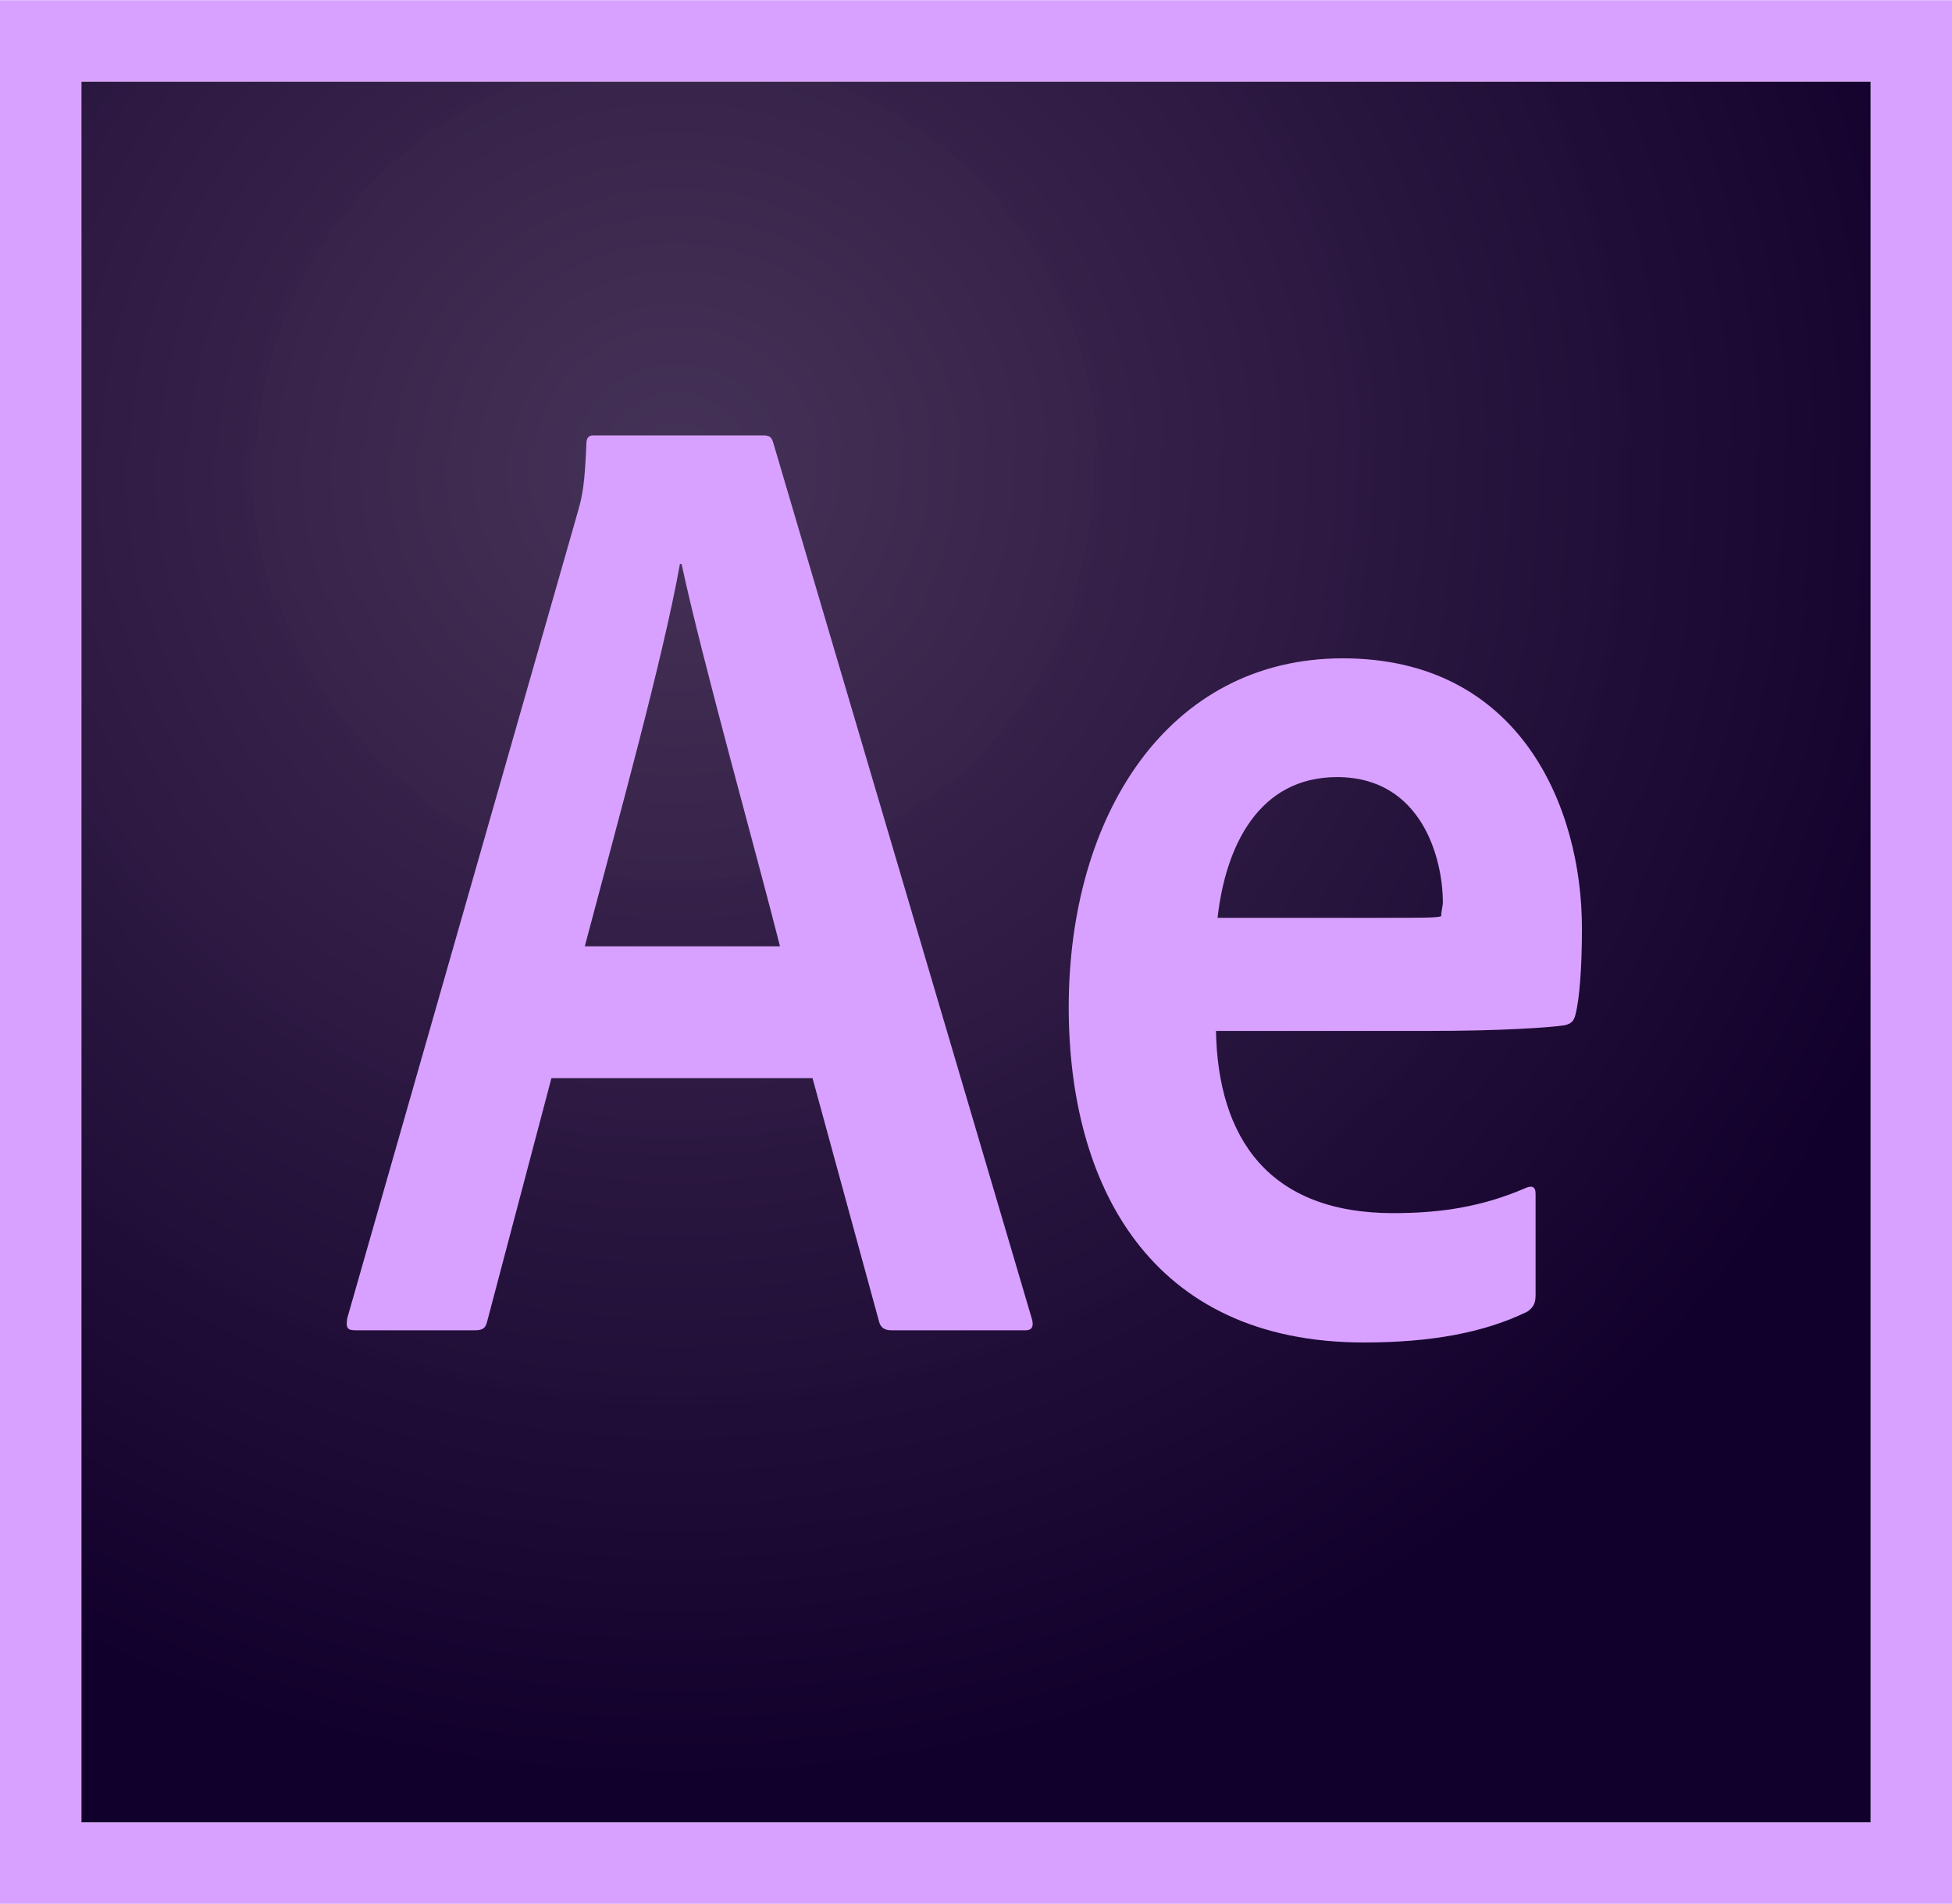 After Effects Cc Logo Png.